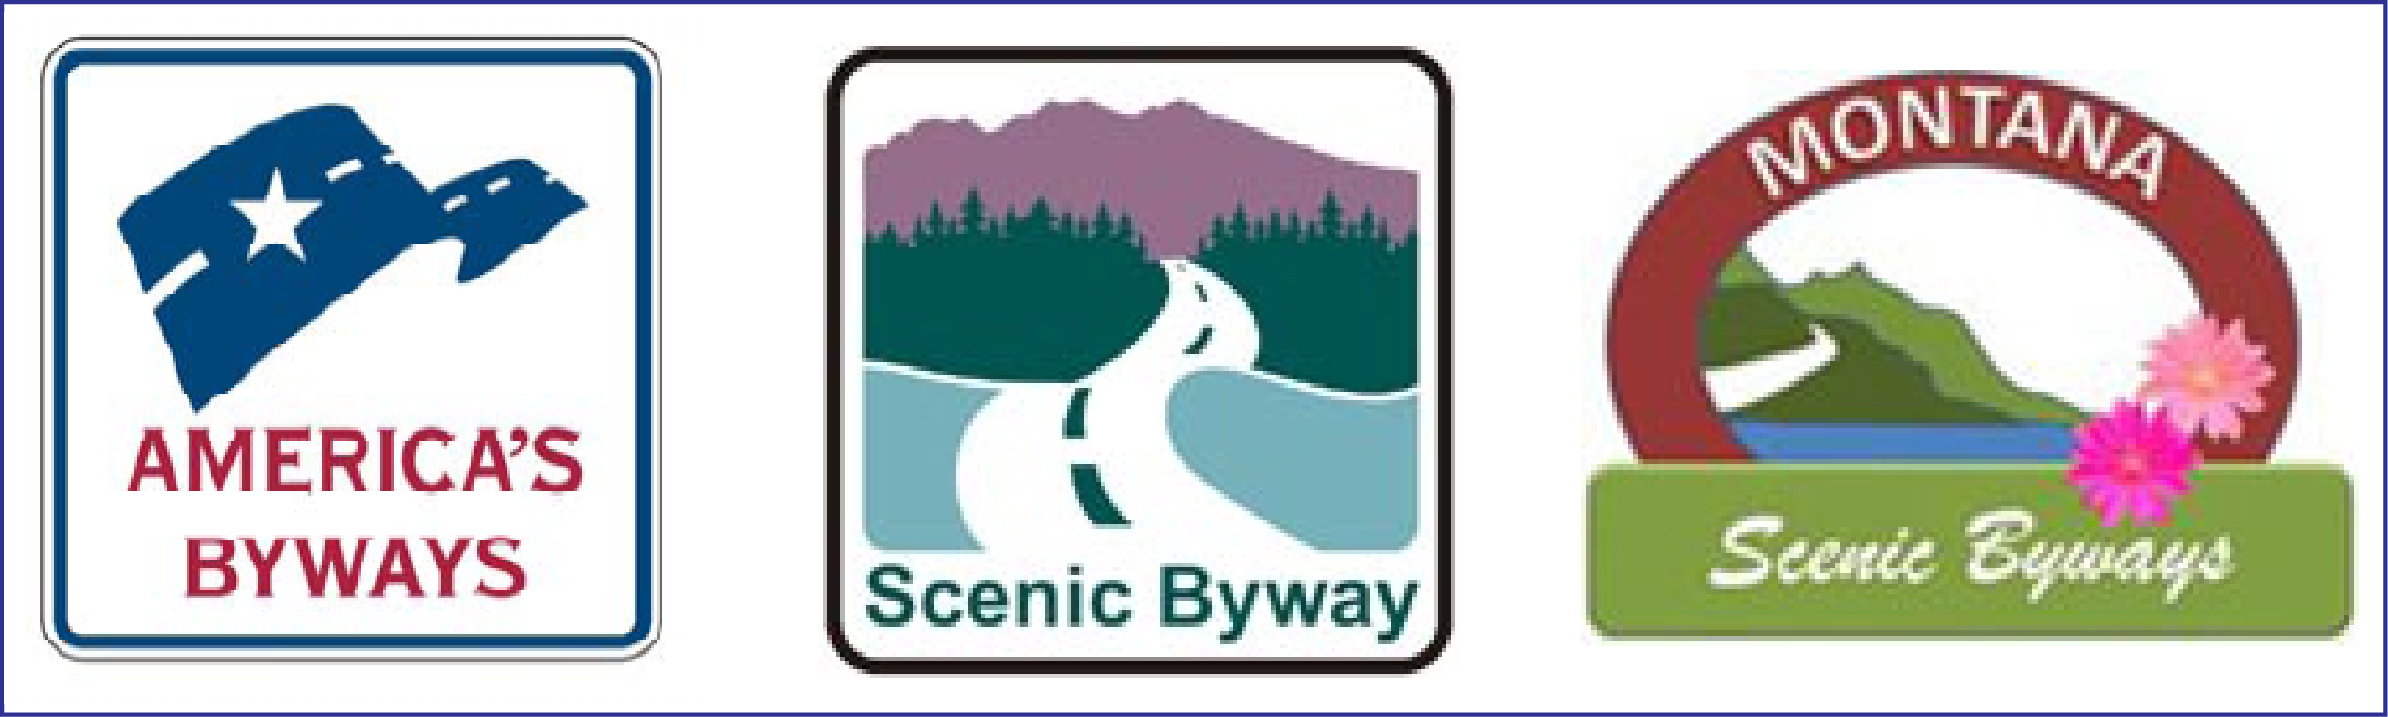 America's Byways, National Forest Scenic Byways, MT Scenic-Historic Byways